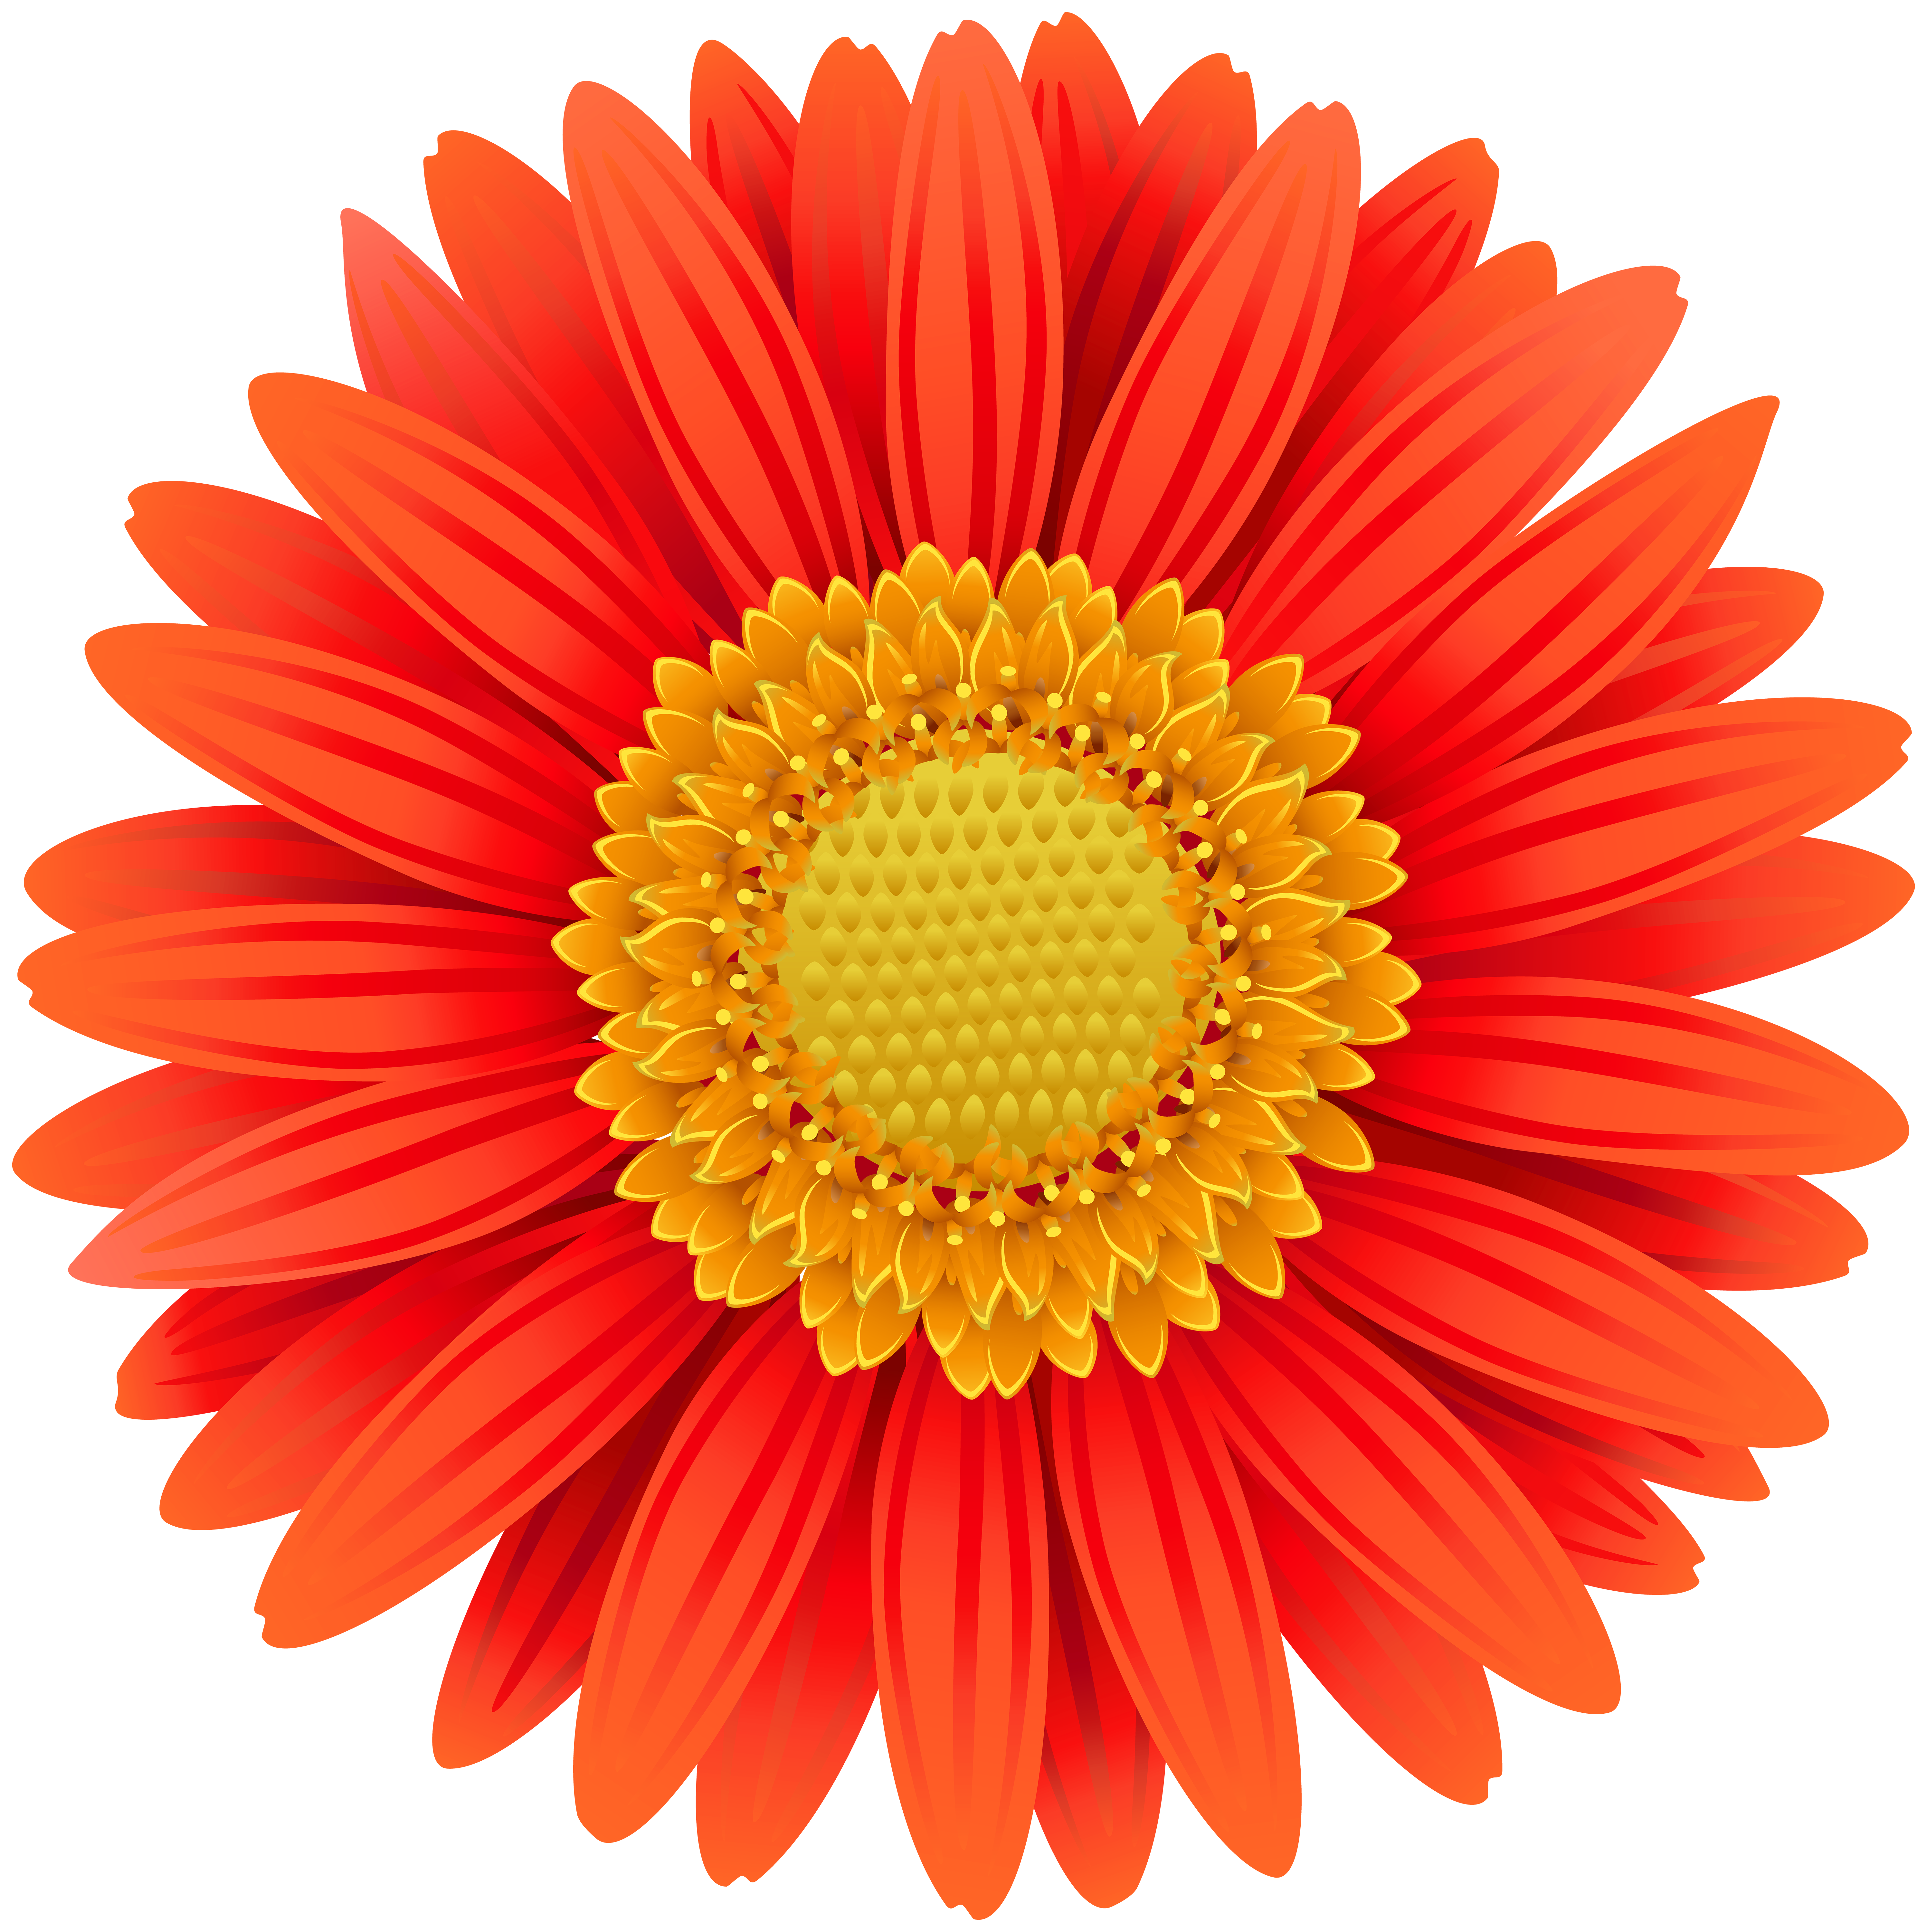 Poppy clipart daisy. Orange gerbera transparent clip